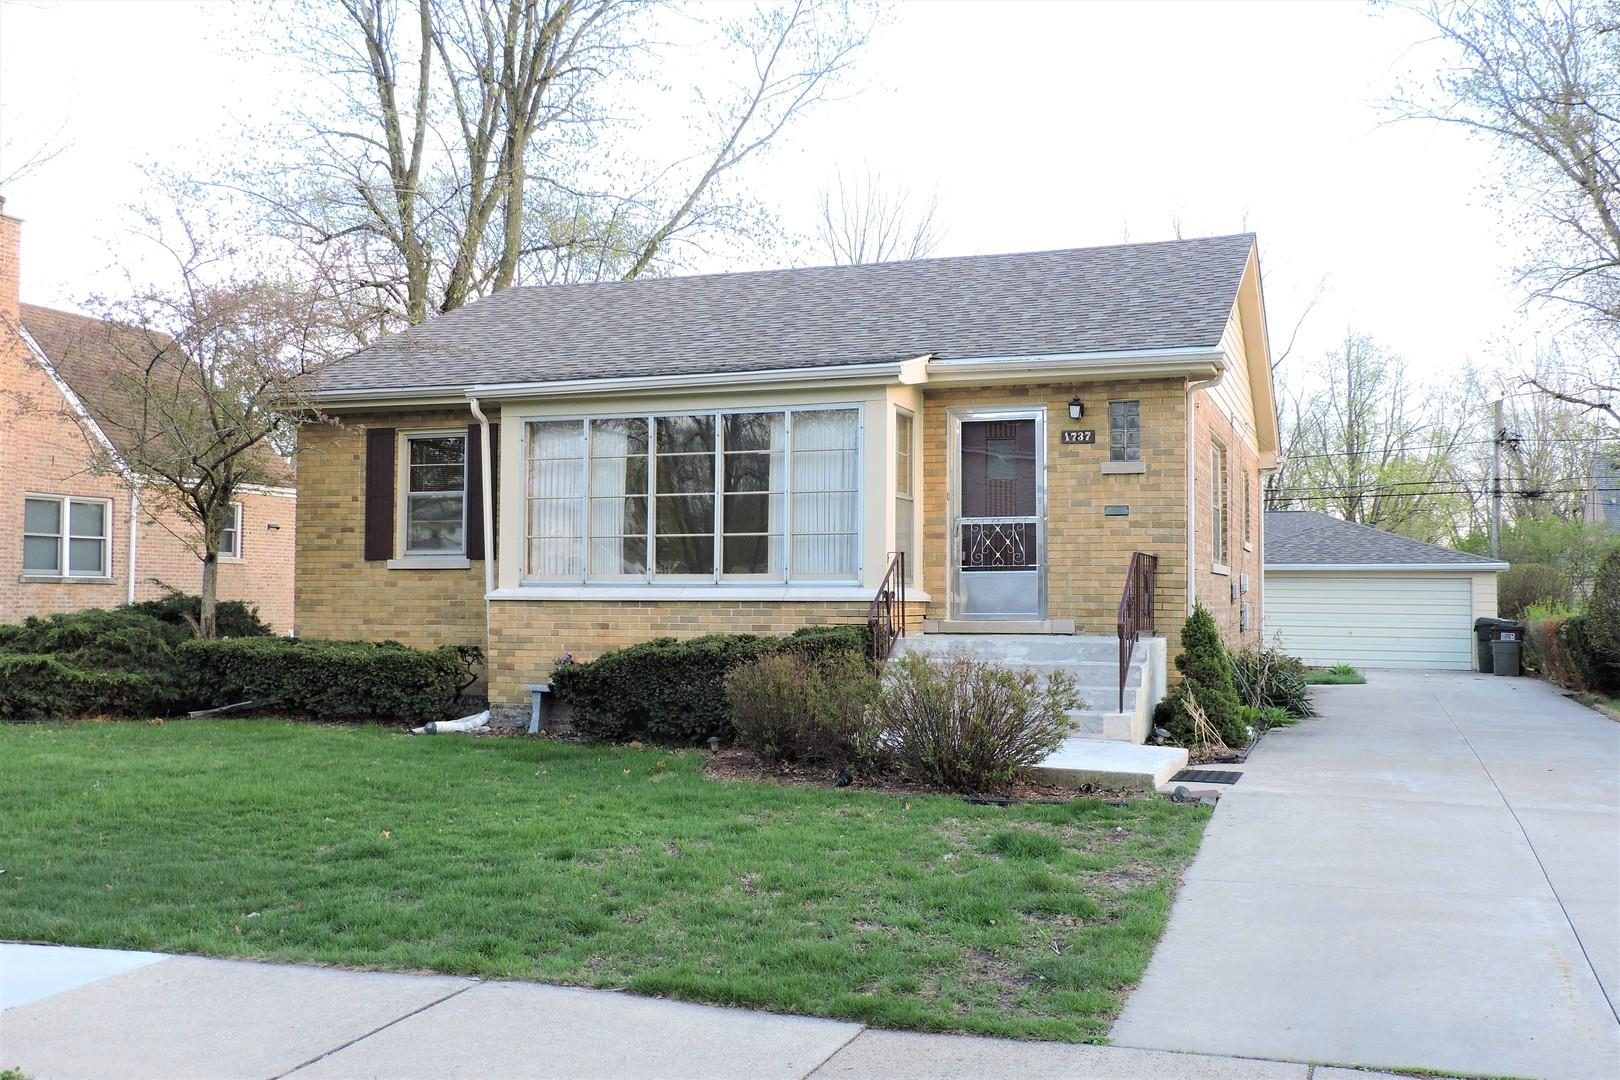 1737 186th Place, Homewood, IL 60430 - #: 11053895